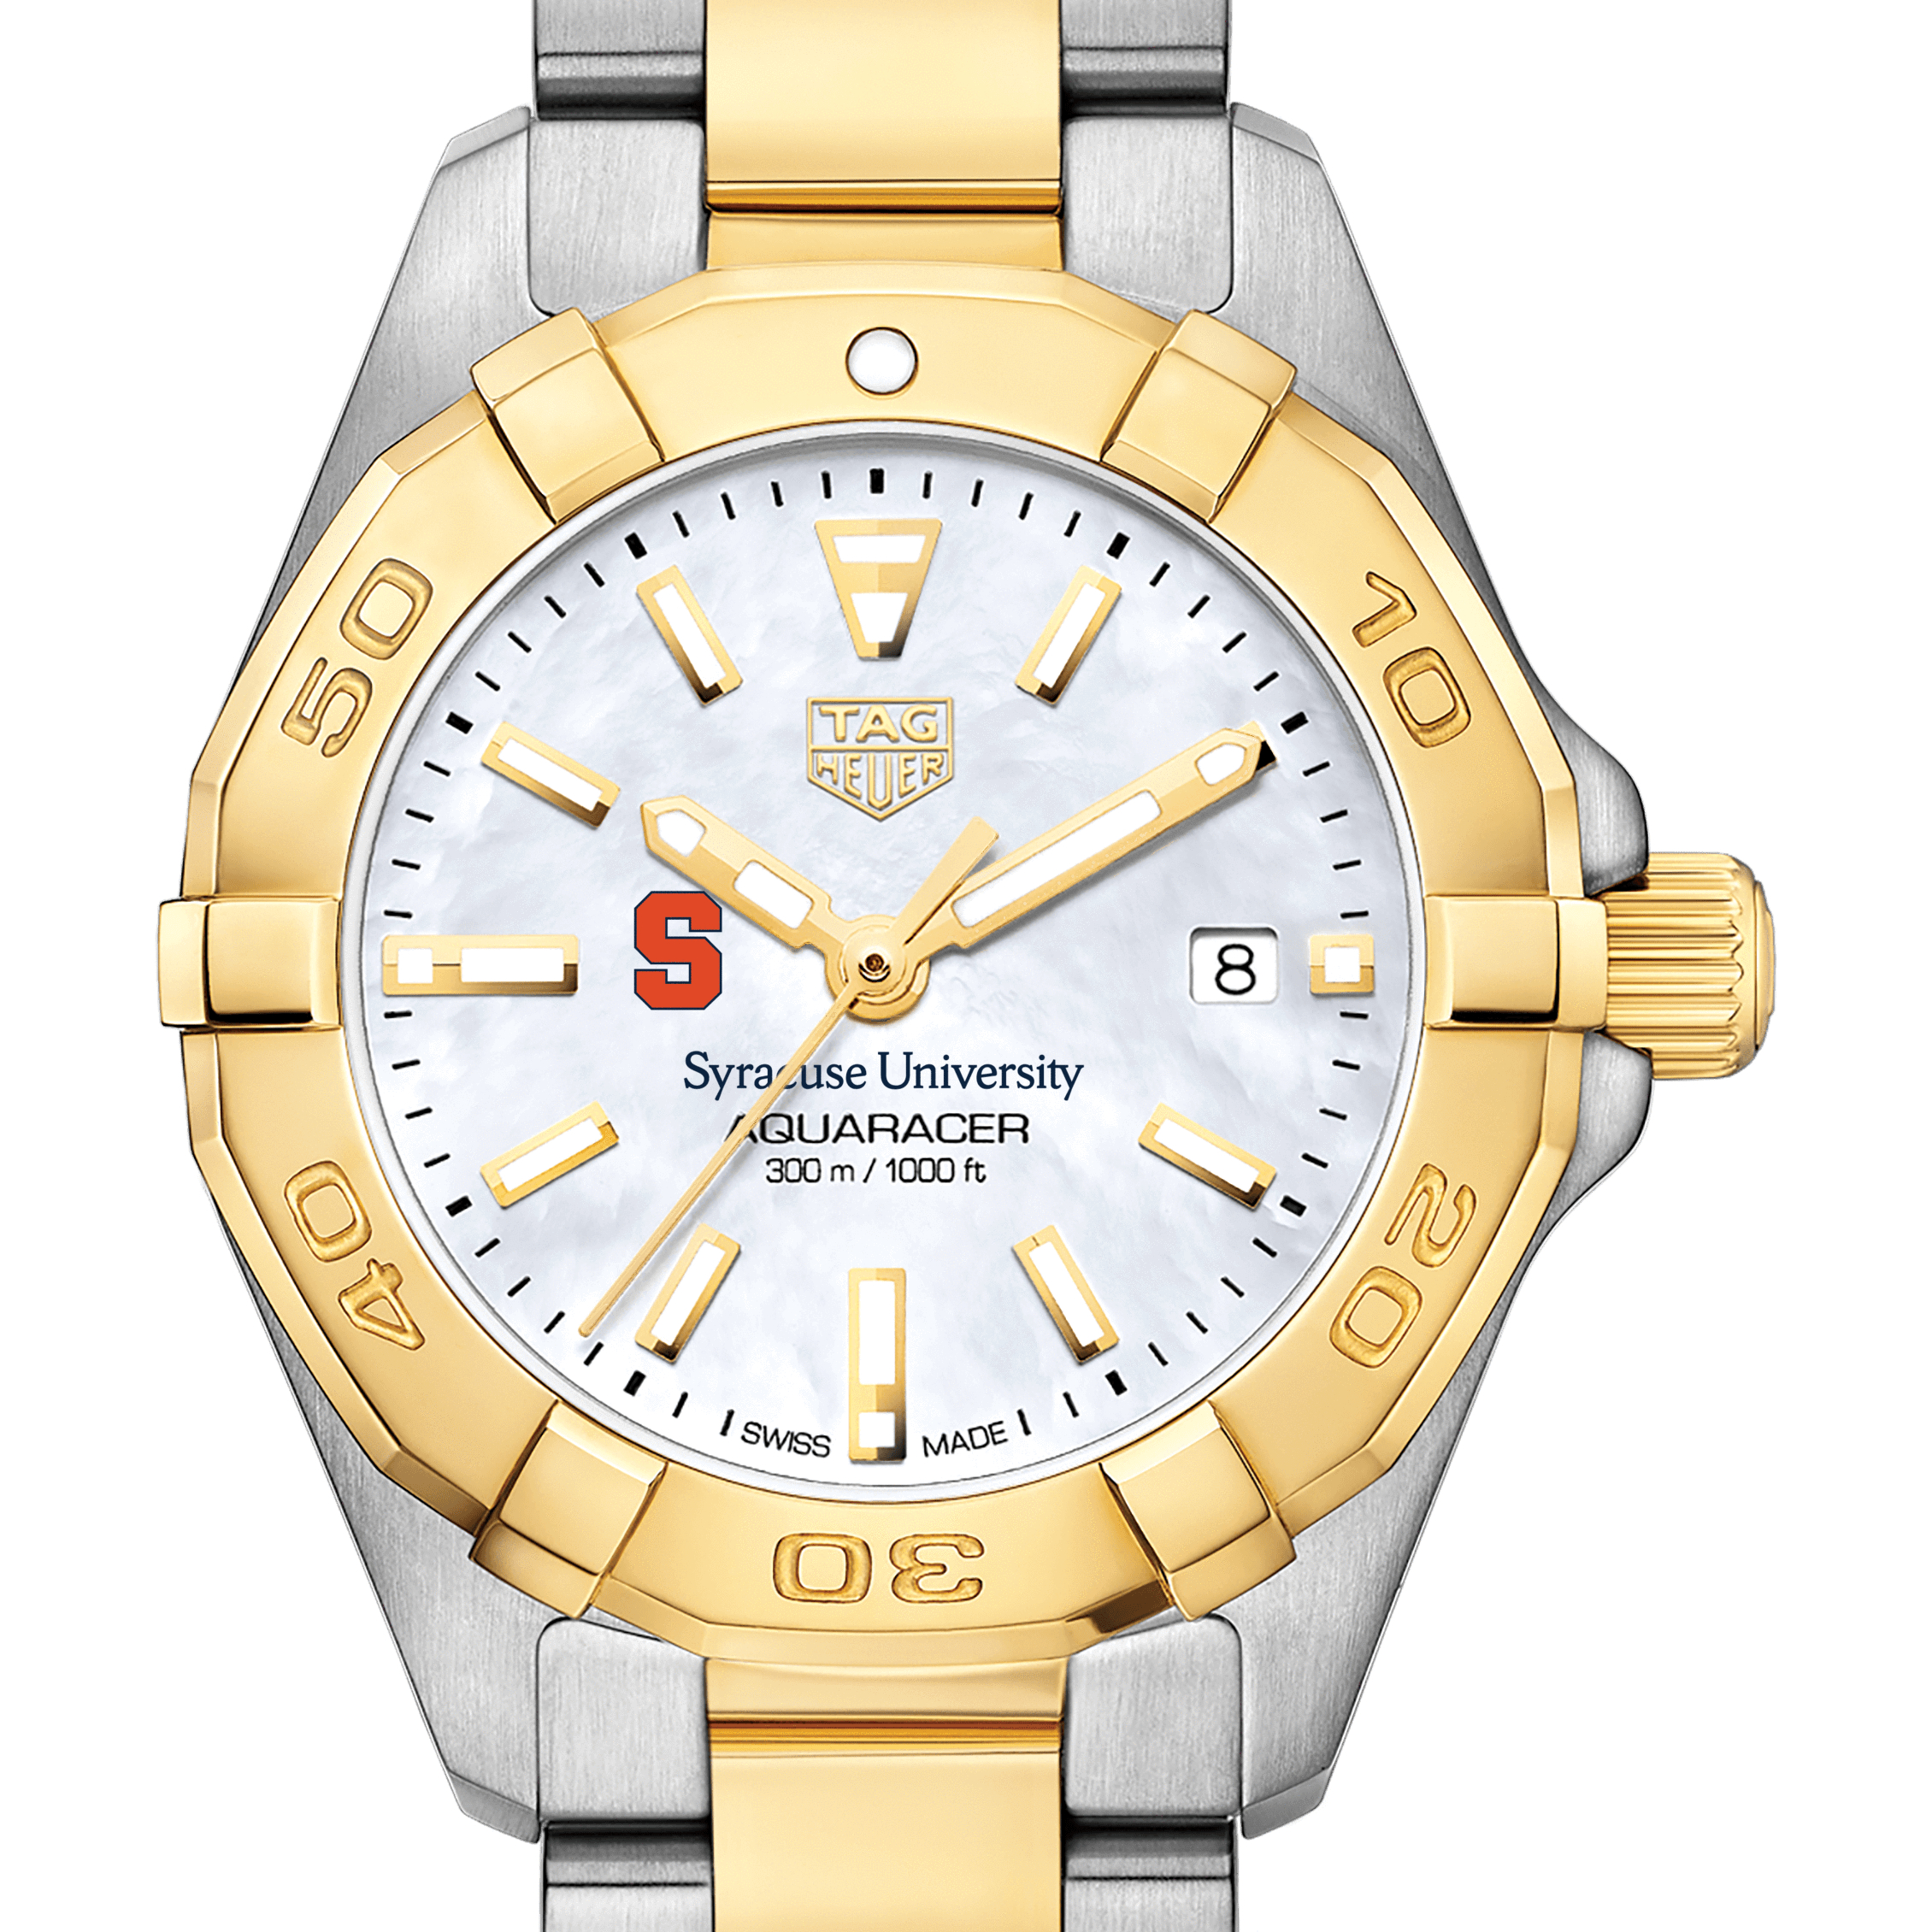 Syracuse University TAG Heuer Two-Tone Aquaracer for Women